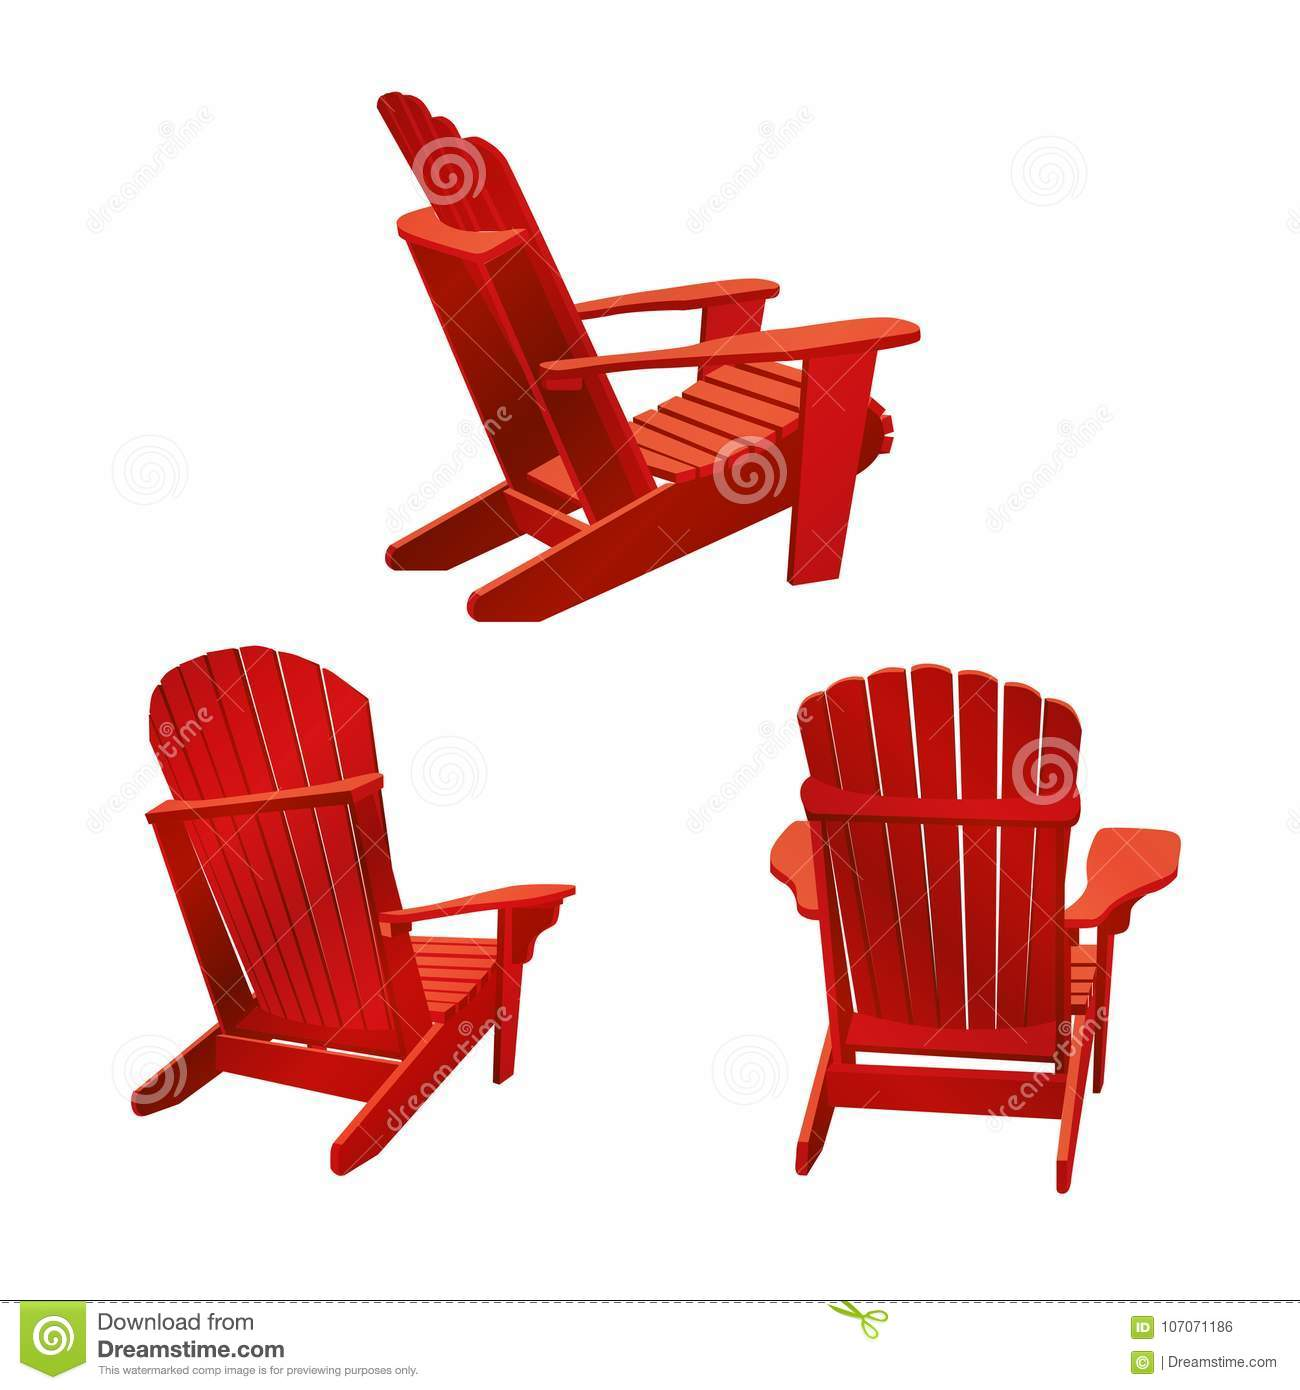 Classic Wooden Outdoor Chair Painted In Red Color Garden